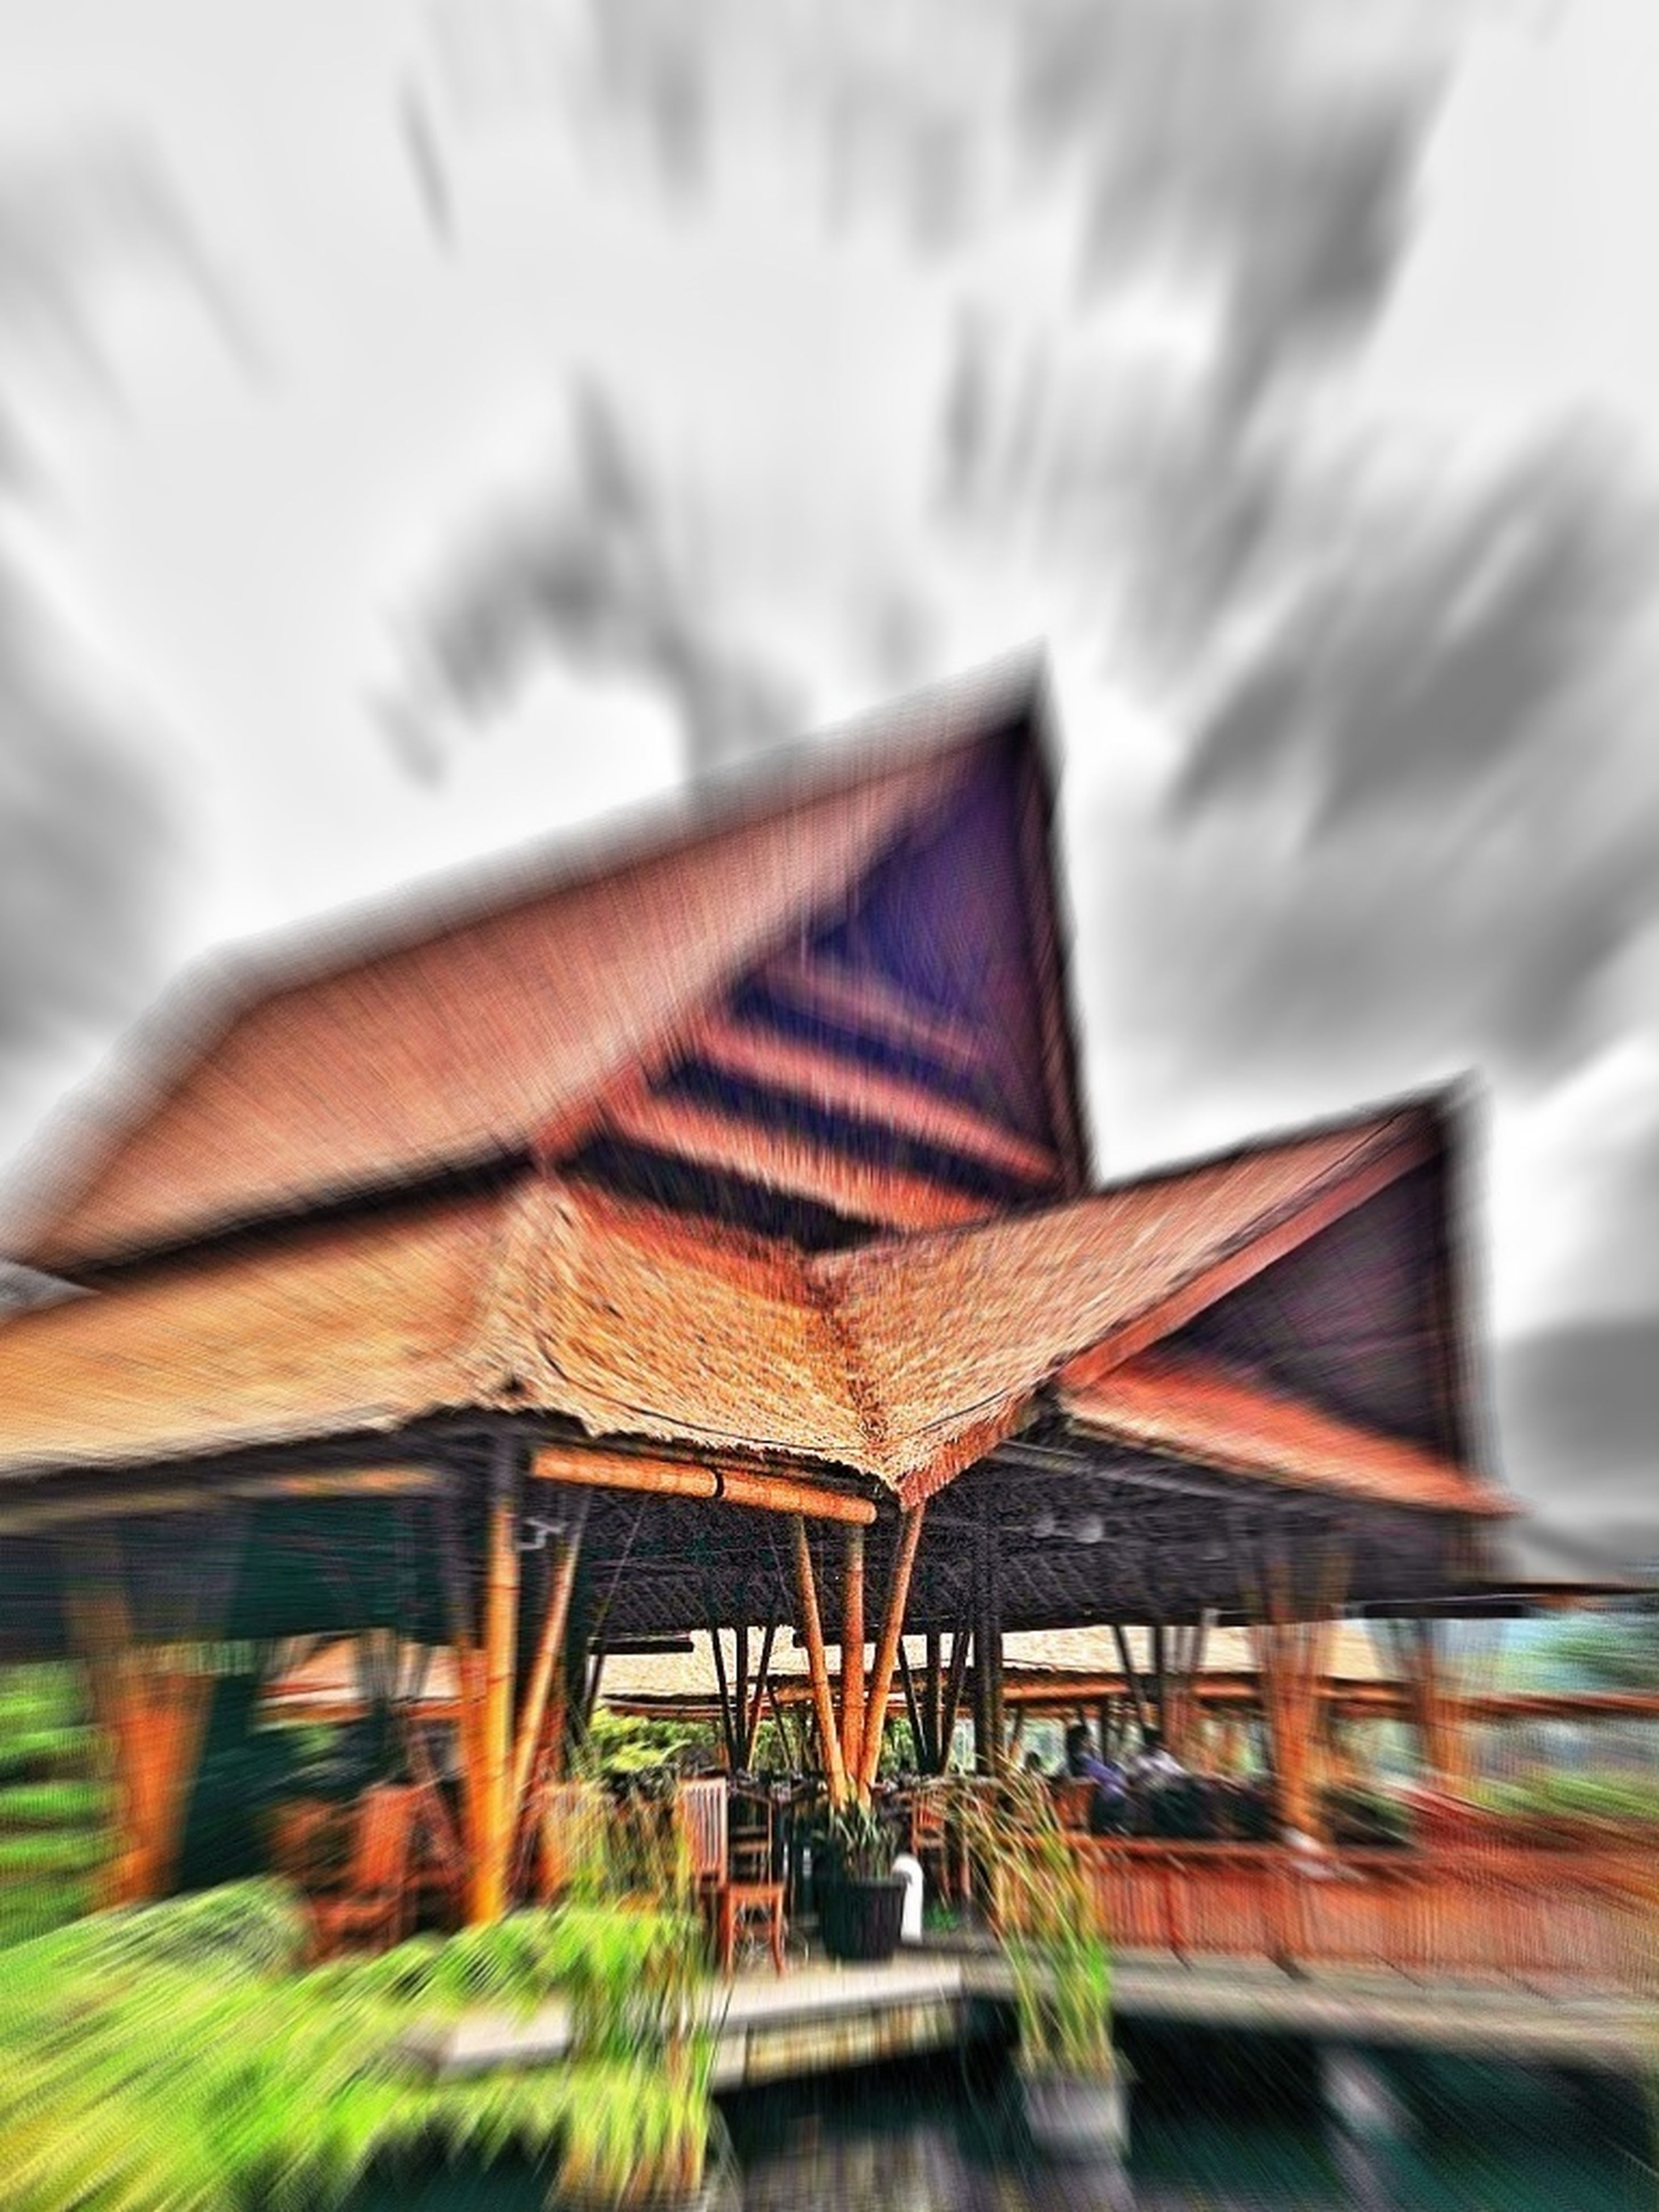 built structure, architecture, building exterior, focus on foreground, wood - material, sky, house, day, selective focus, outdoors, no people, roof, religion, wooden, plant, sunlight, red, close-up, nature, spirituality